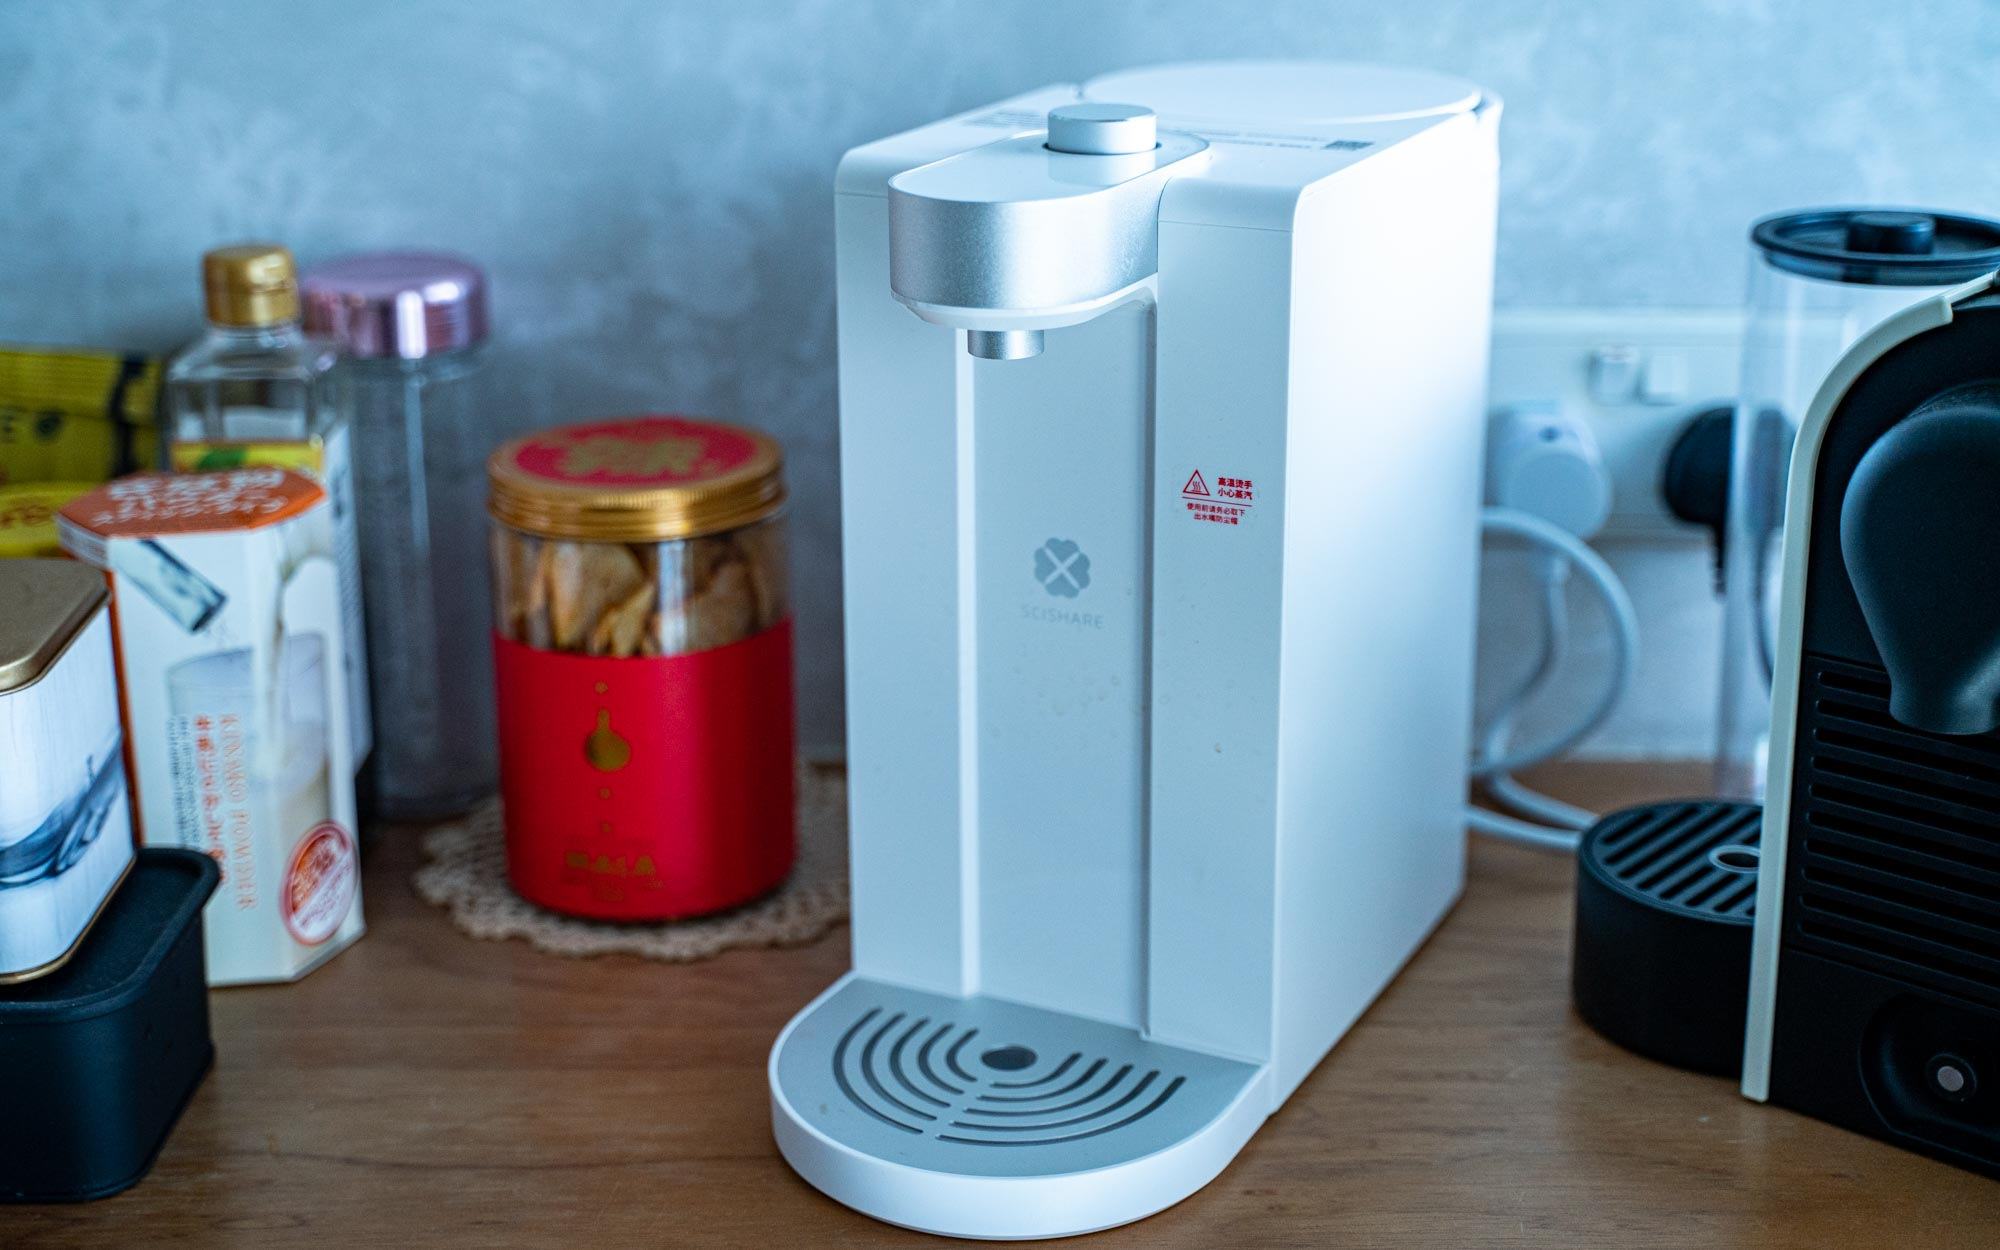 Xiaomi S2101 Scishare Hot Water Dispenser